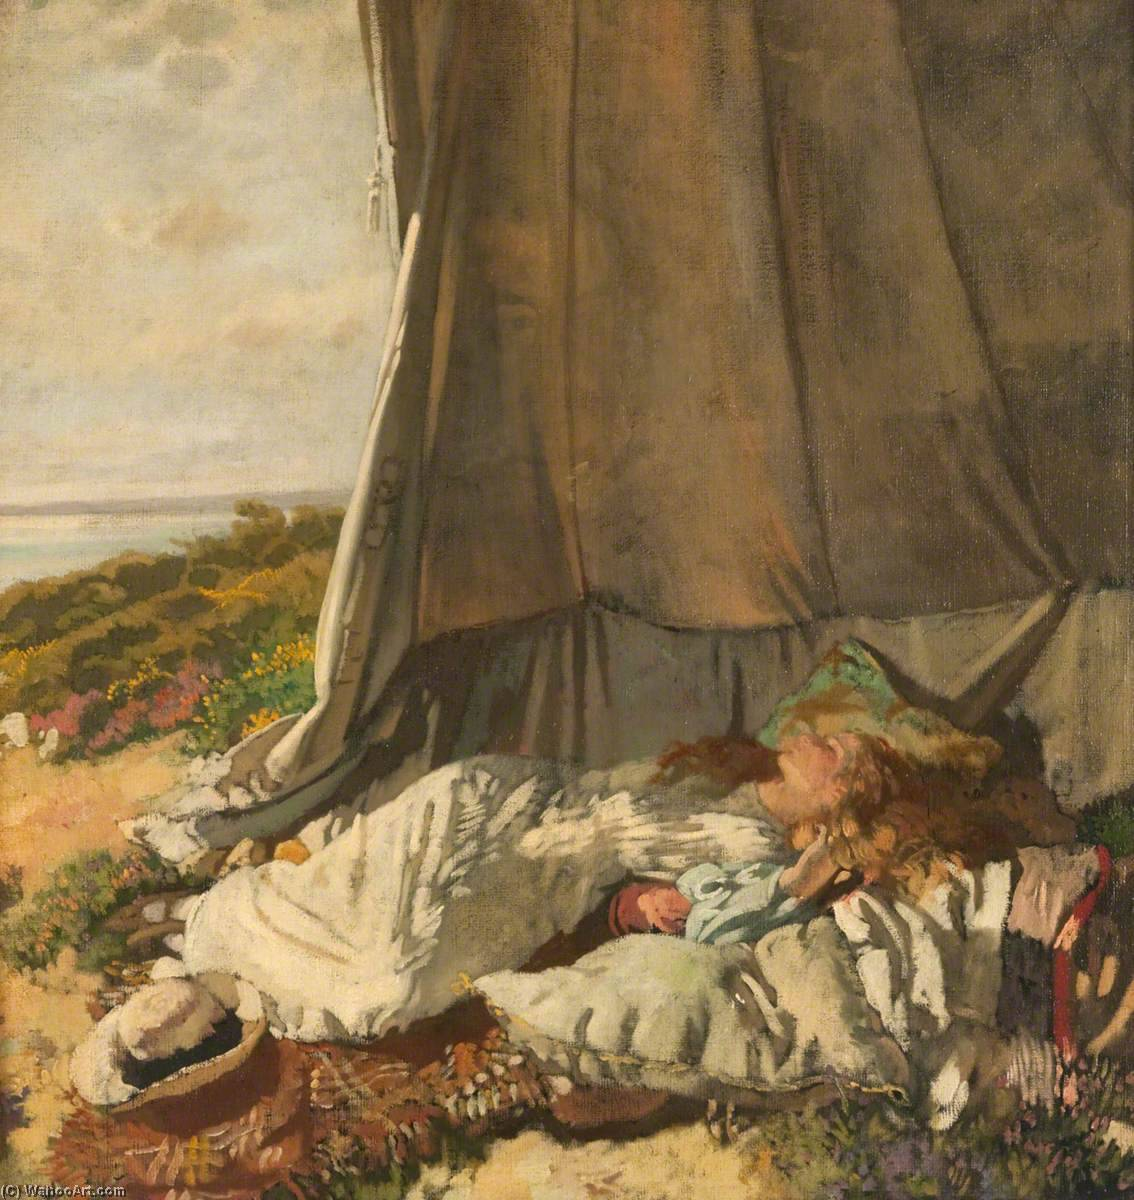 laprès midi couchent , 1912 de William Newenham Montague Orpen (1878-1931, Ireland) | Reproductions De Peintures William Newenham Montague Orpen | WahooArt.com